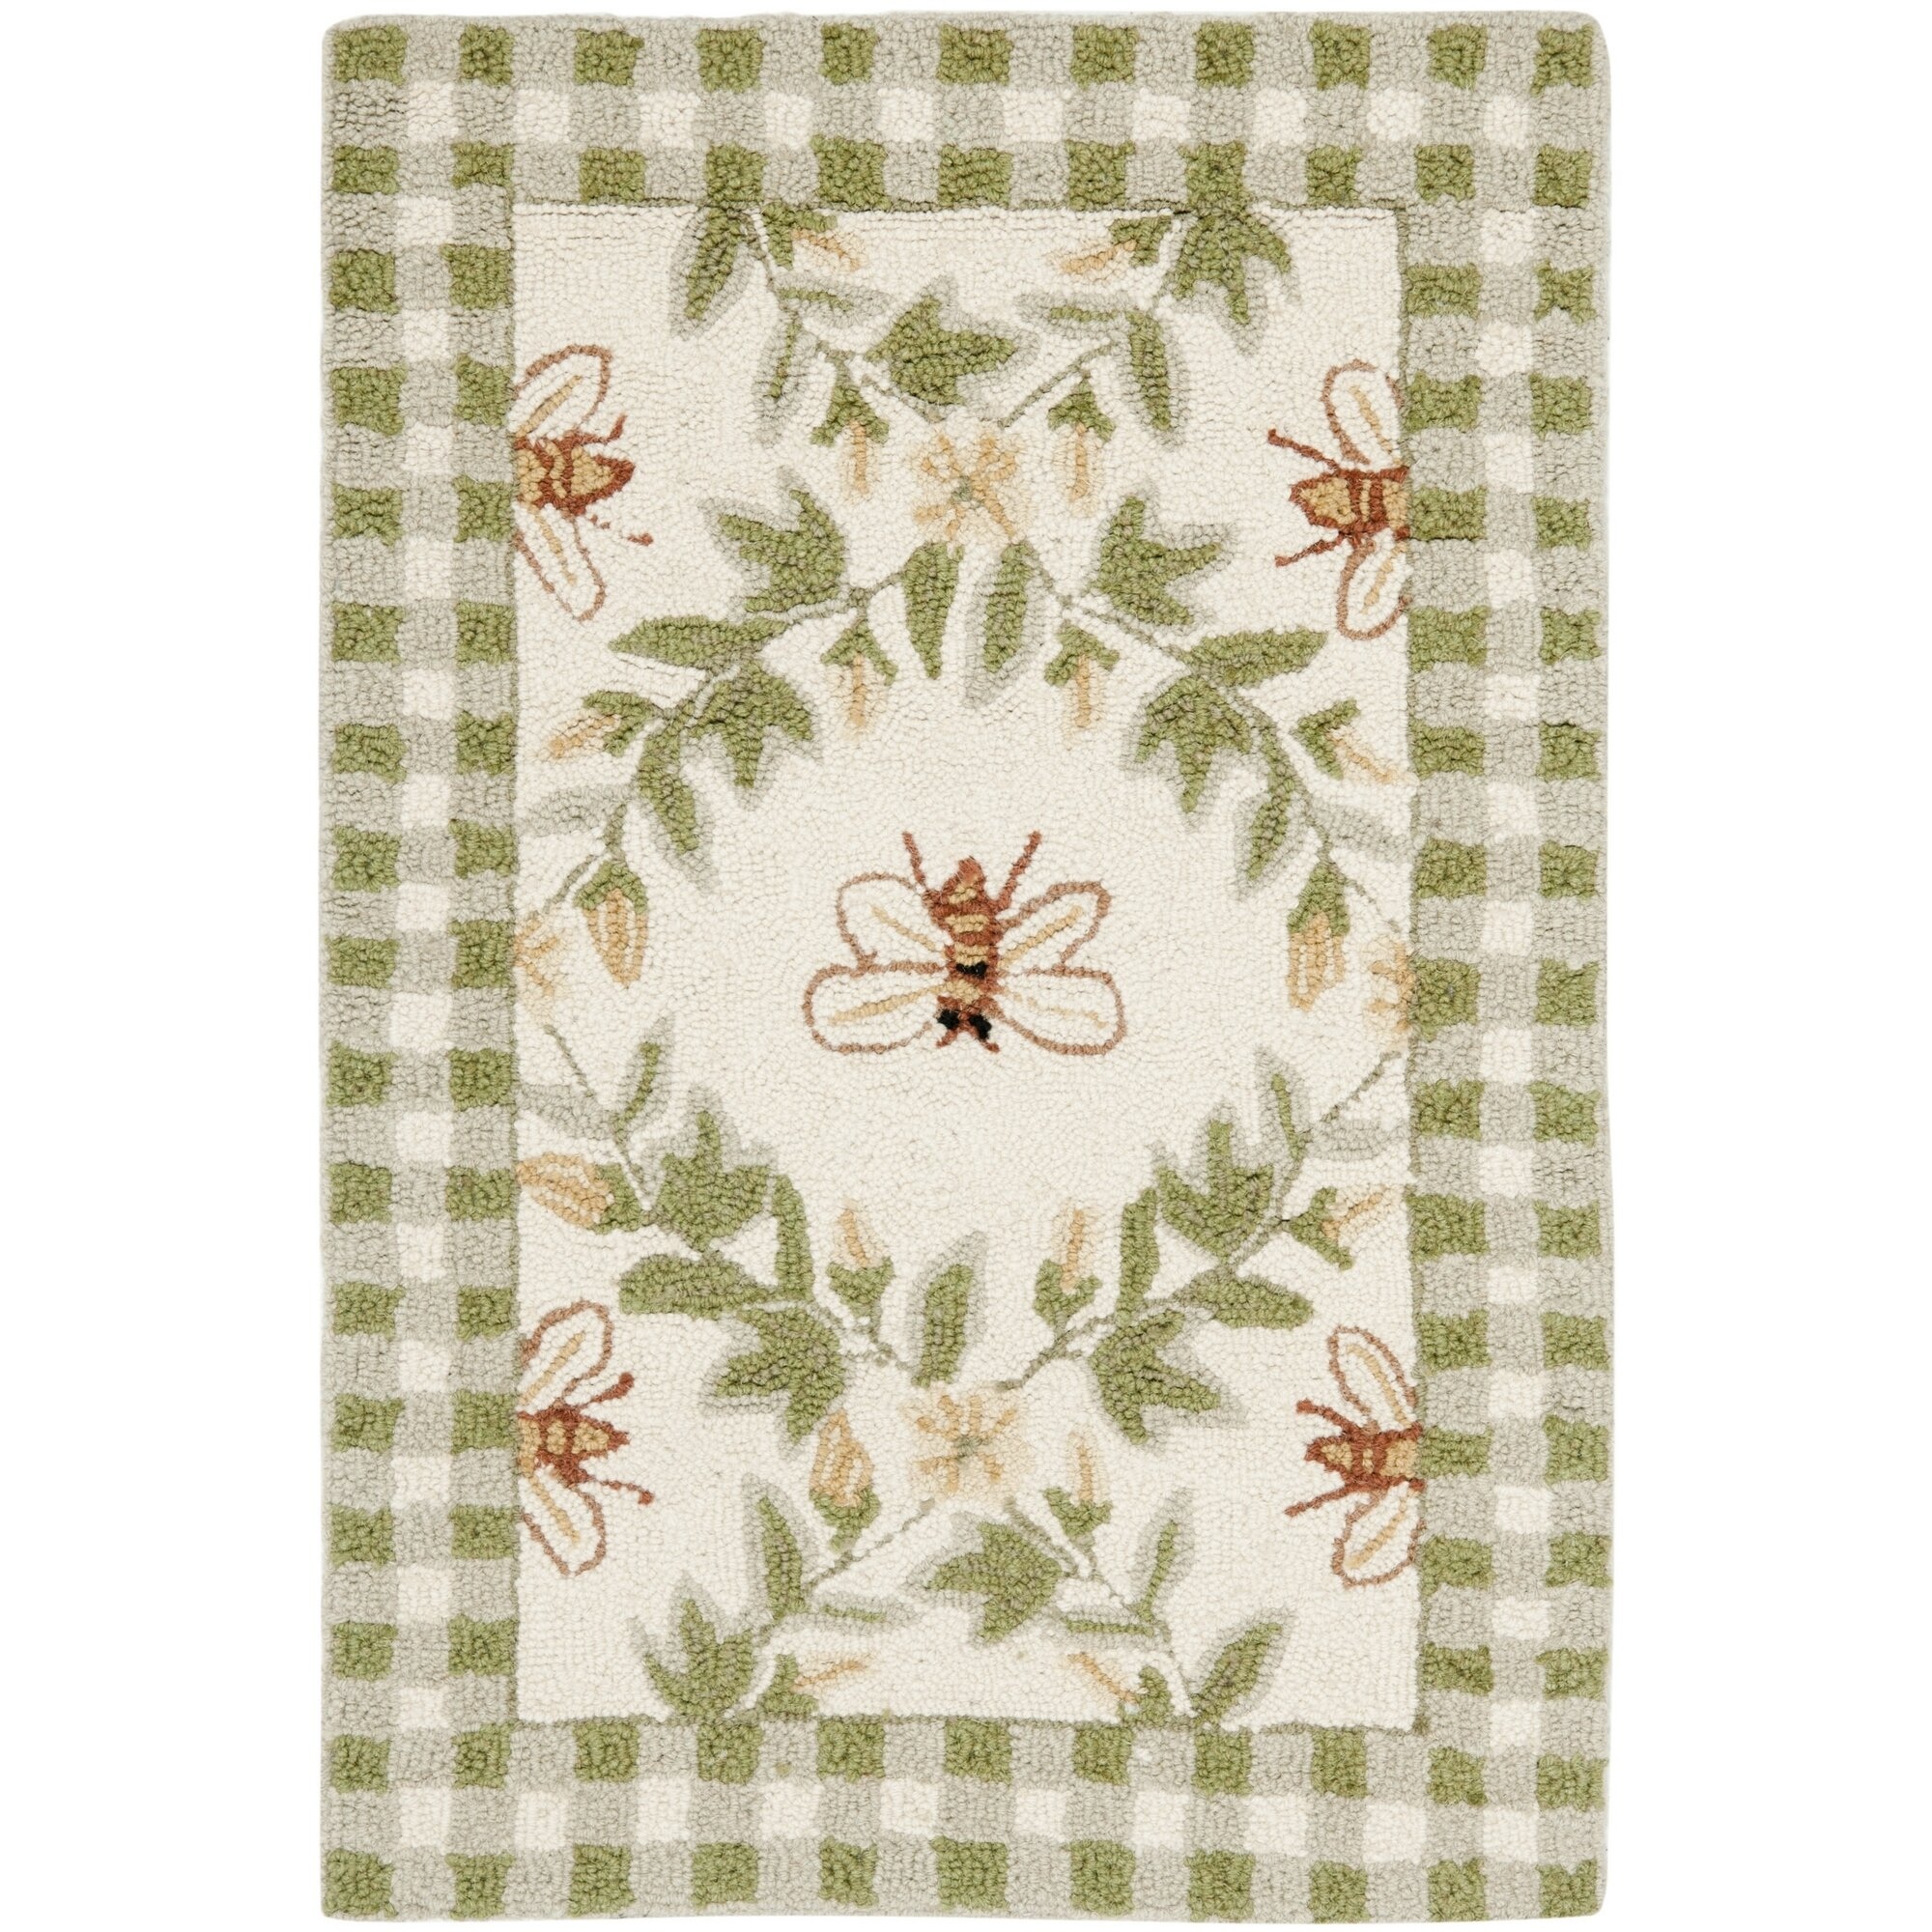 safavieh chelsea ivory green bumblebee area rug cheerful home office rug wayfair safavieh